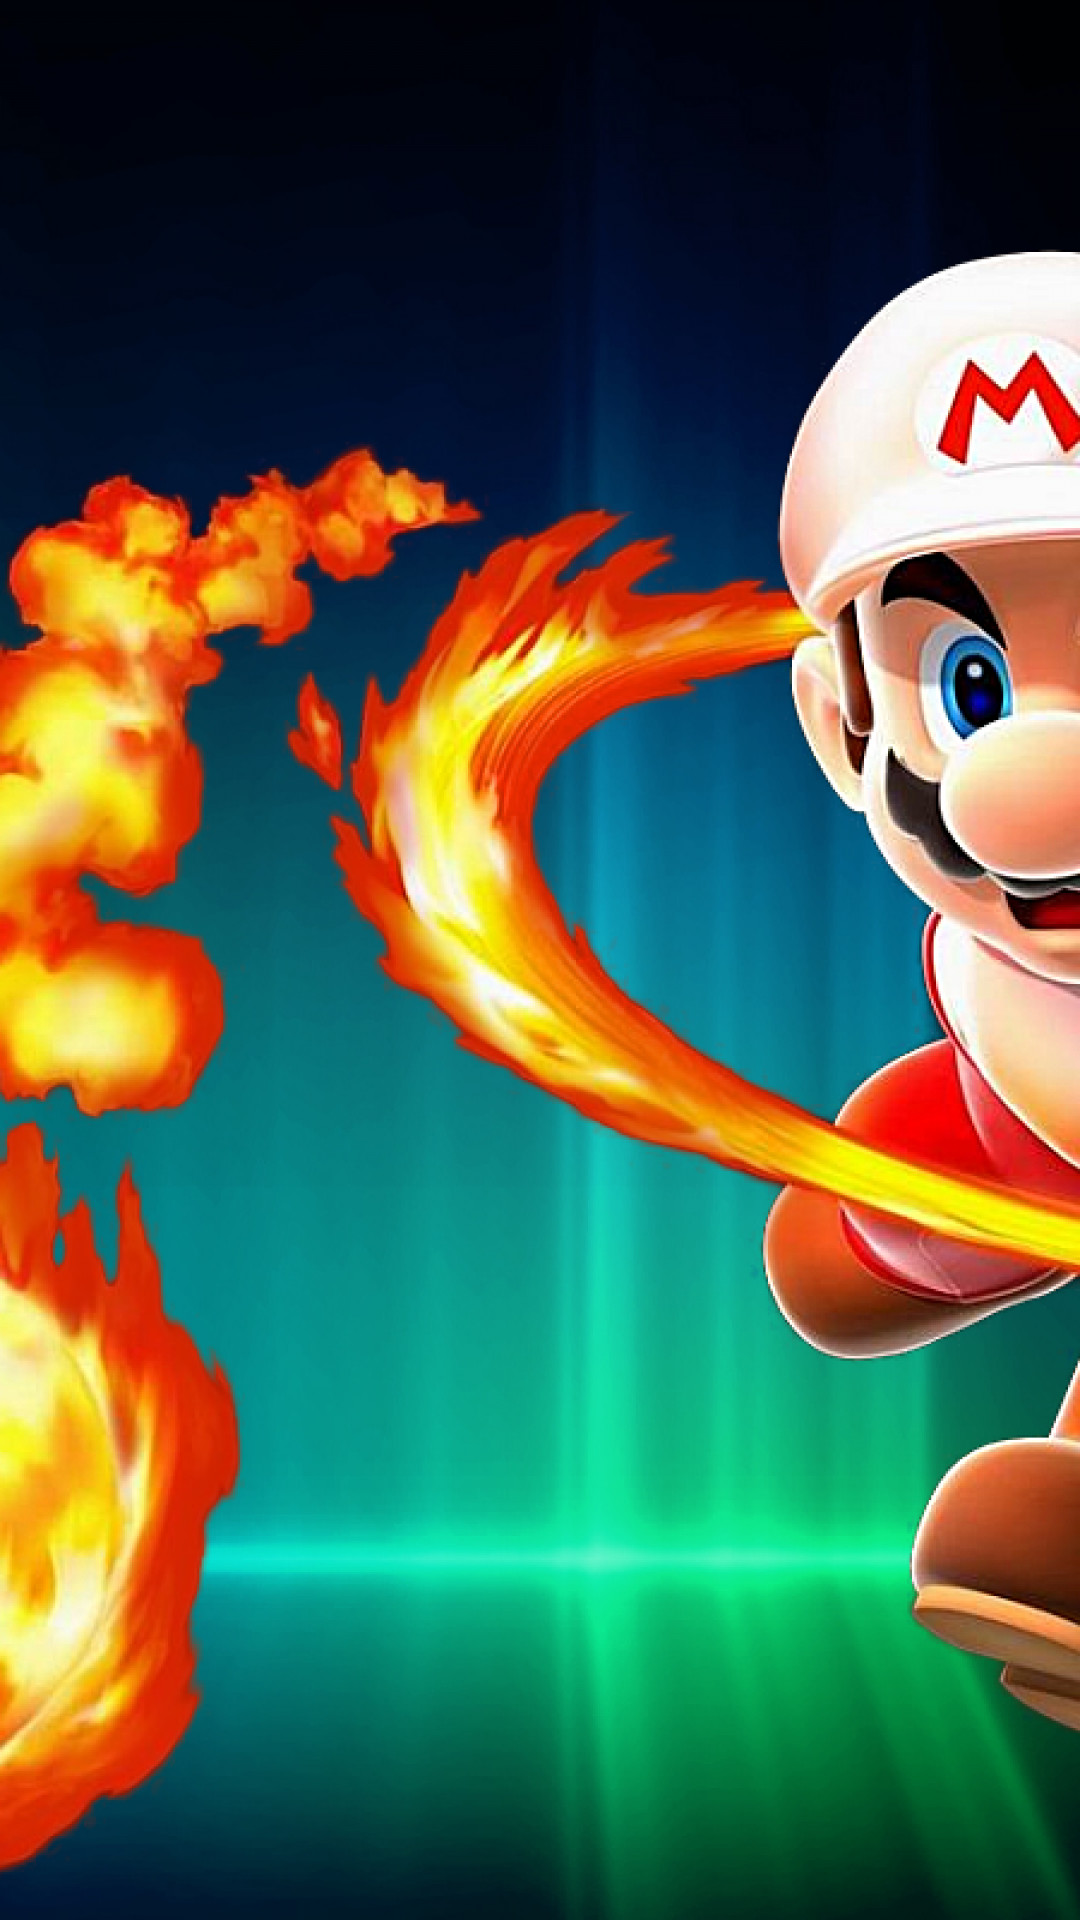 Get free high quality HD wallpapers iphone 6 plus wallpaper mario